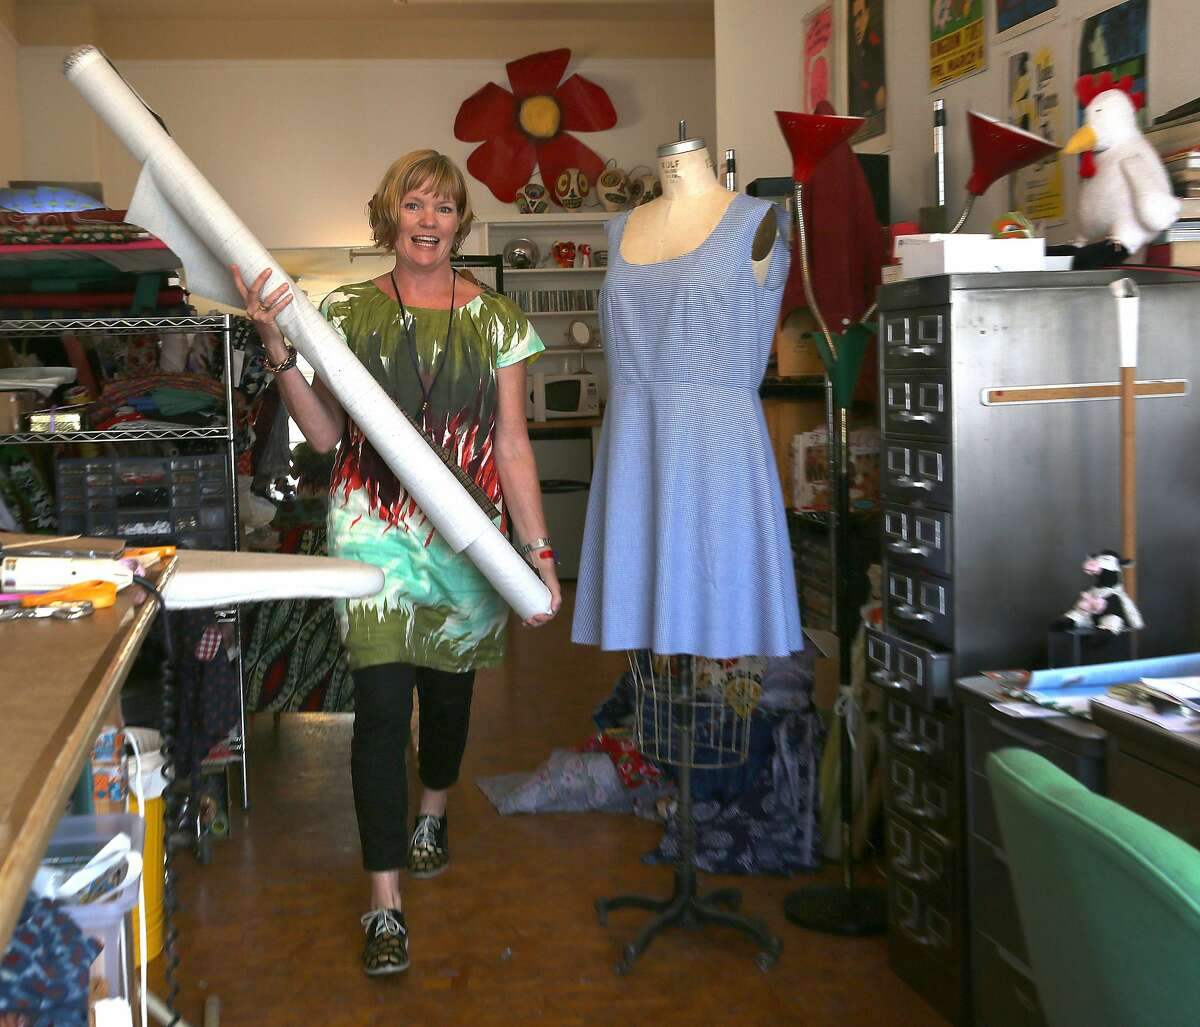 Clothing designer Dema Grim in her downtown studio on Tuesday, September 13, 2016, in San Francisco, Calif.